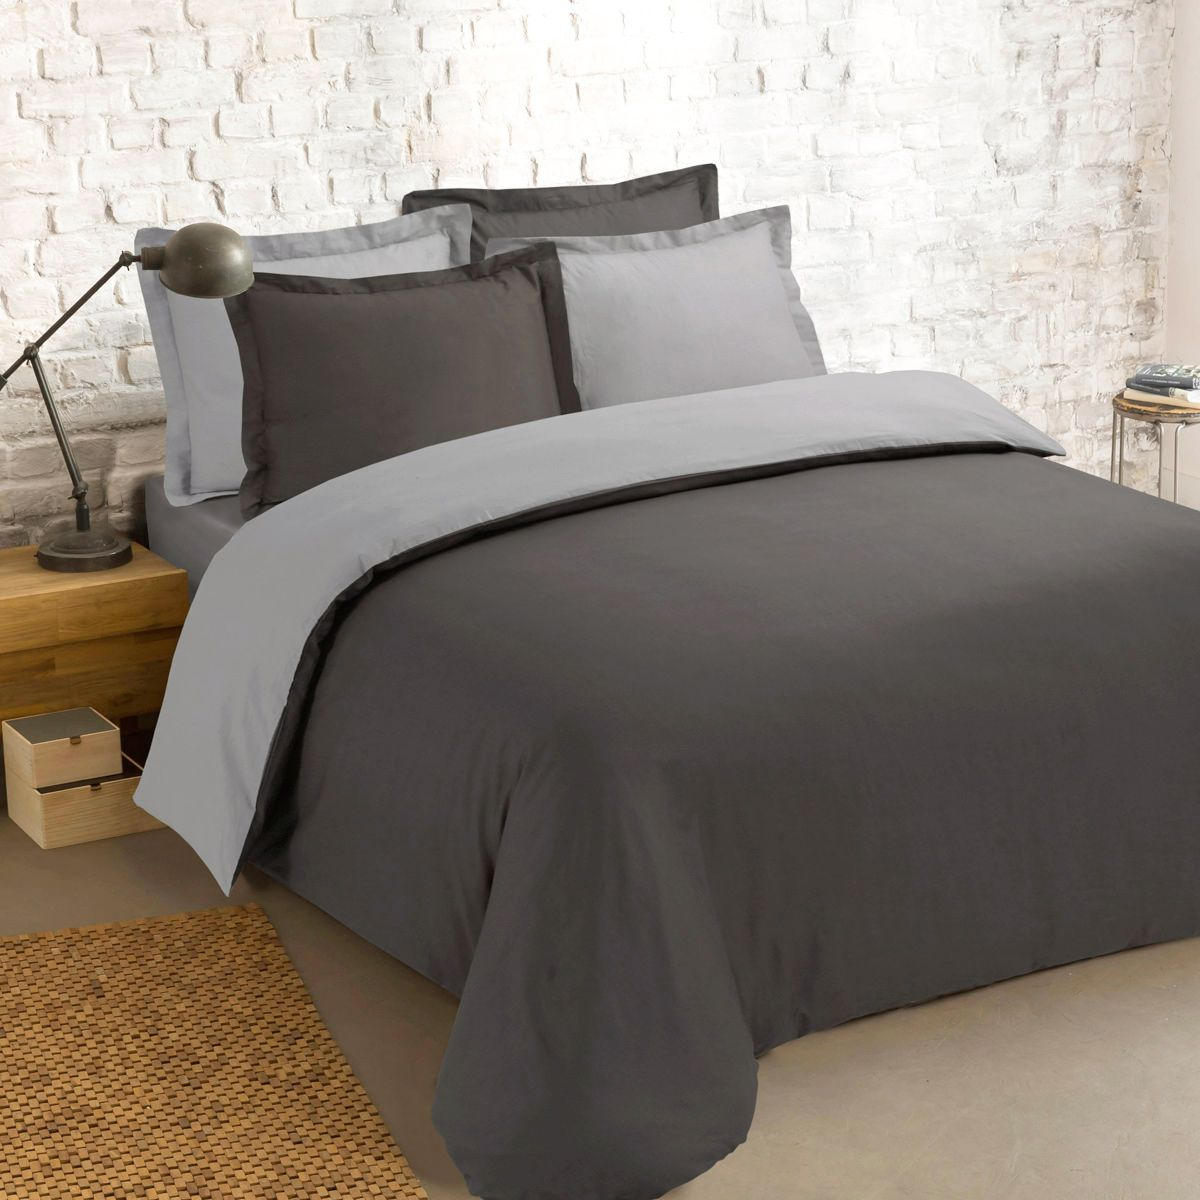 housse de couette et deux taies 200 cm bi color anthracite et gris housse de couette eminza. Black Bedroom Furniture Sets. Home Design Ideas